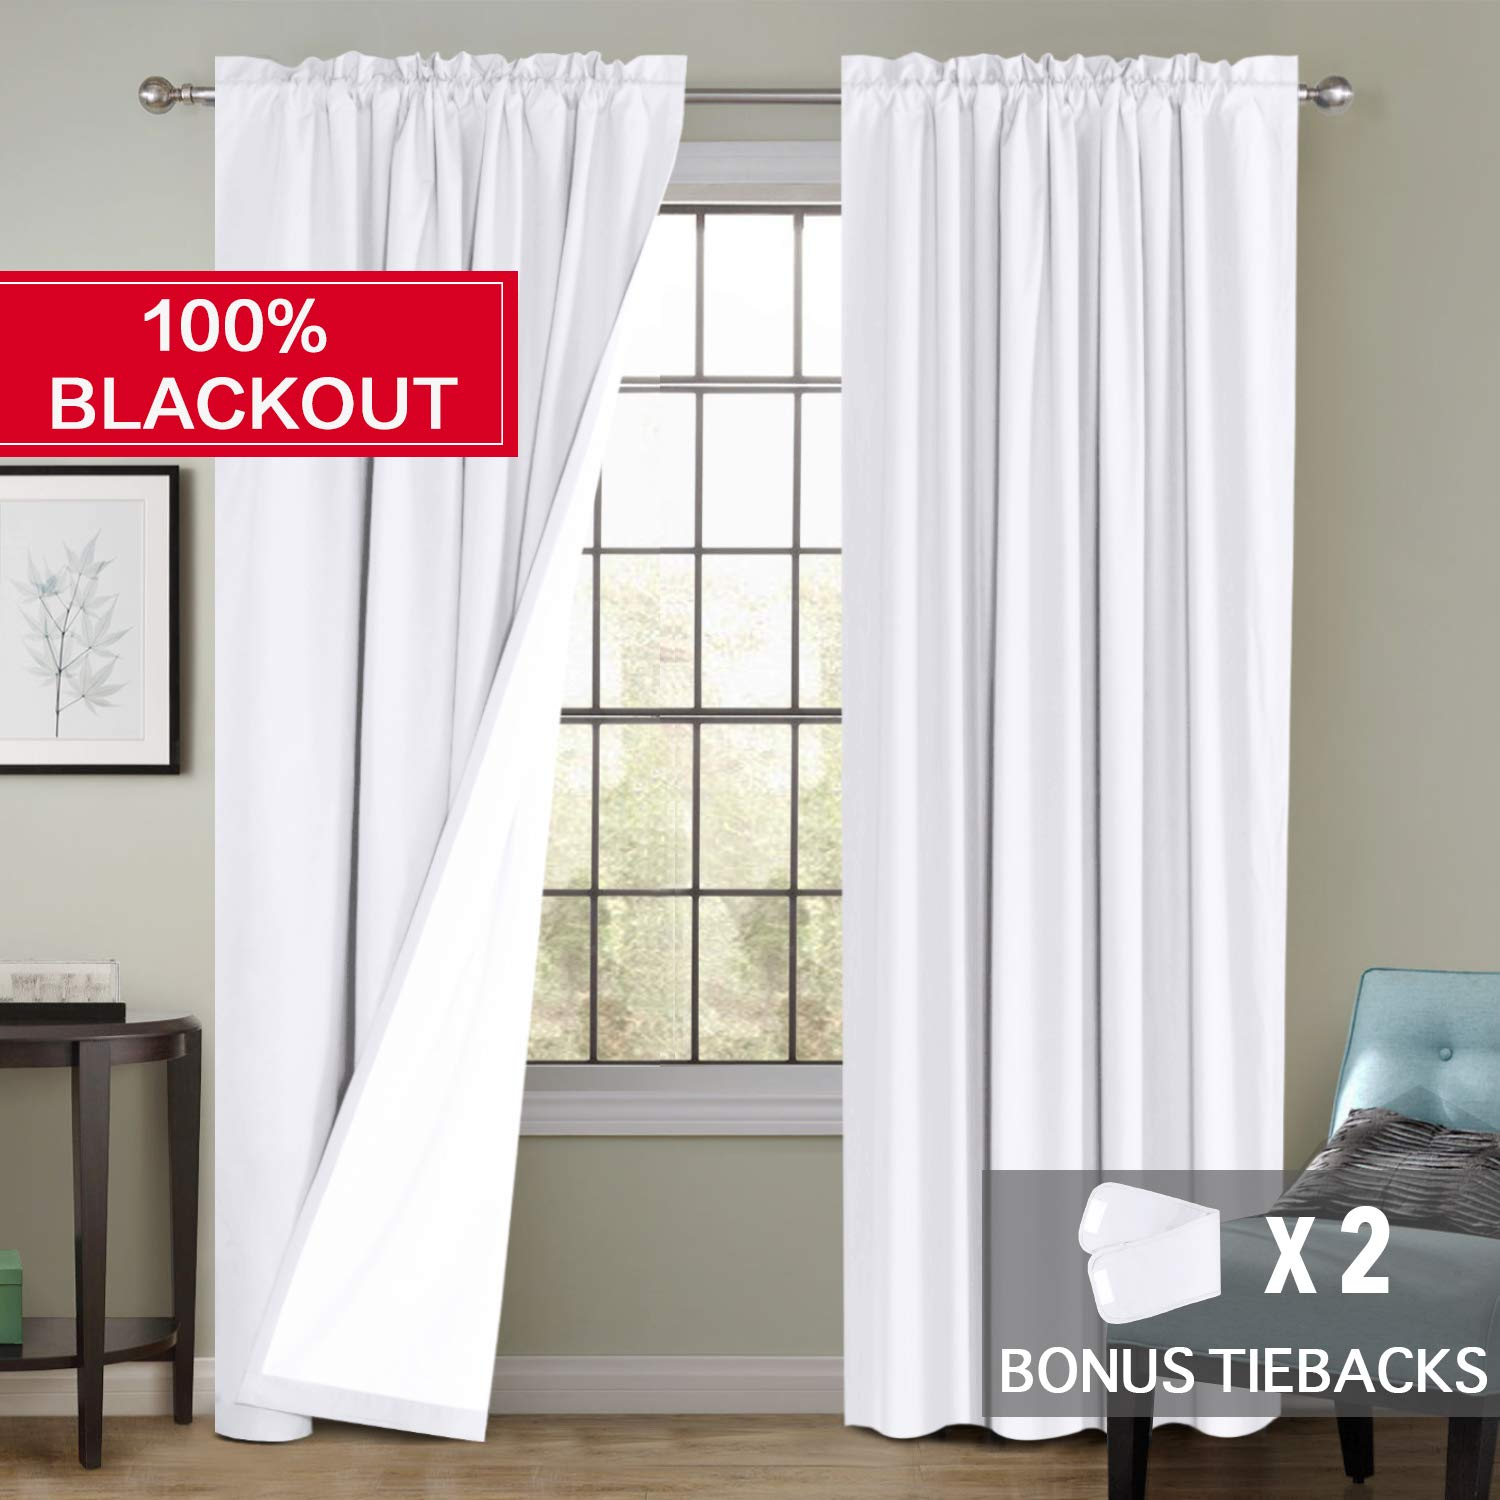 Flamingo P 100% Blackout Curtains Waterproof Fabric Curtains with White Thermal Insulated Liner, Rod Pocket Cotton Finishing Curtains for Bedroom 2 Bonus Tie-Backs, (2 Panels W52 x L96 inches, White)